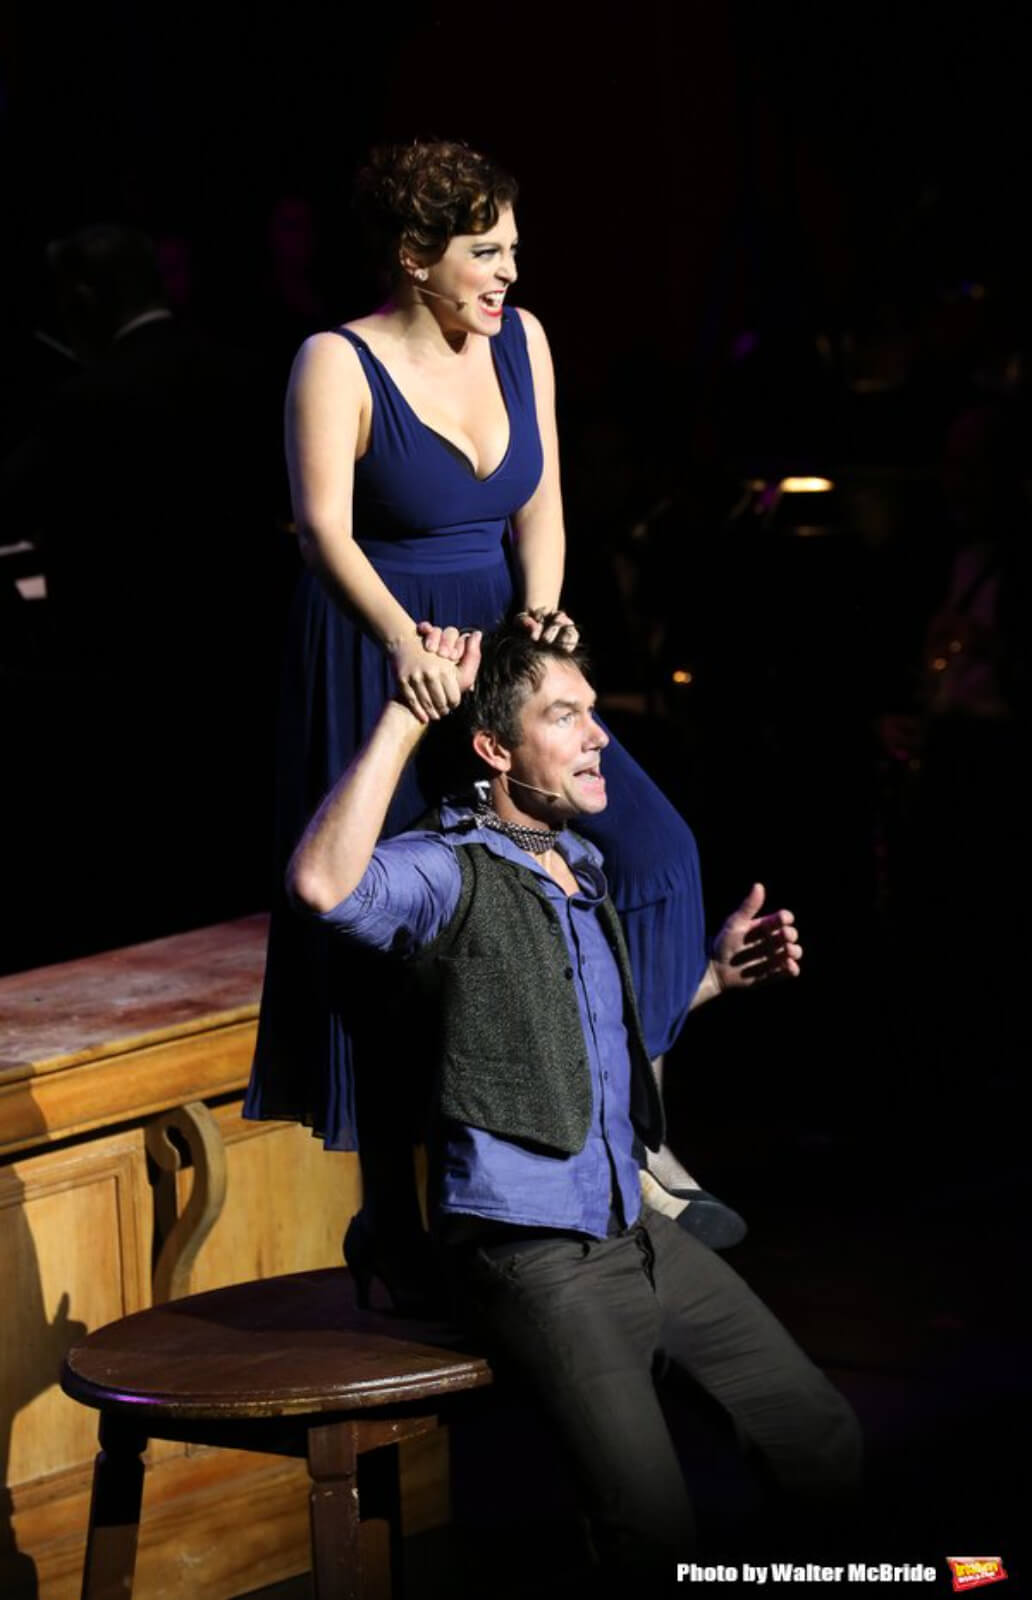 """Irene Roth (Rachel Bloom) standing on a table and pulling the hair of Lance Hawkins (Jerry O'Connell) while performing """"Naughty Baby"""""""